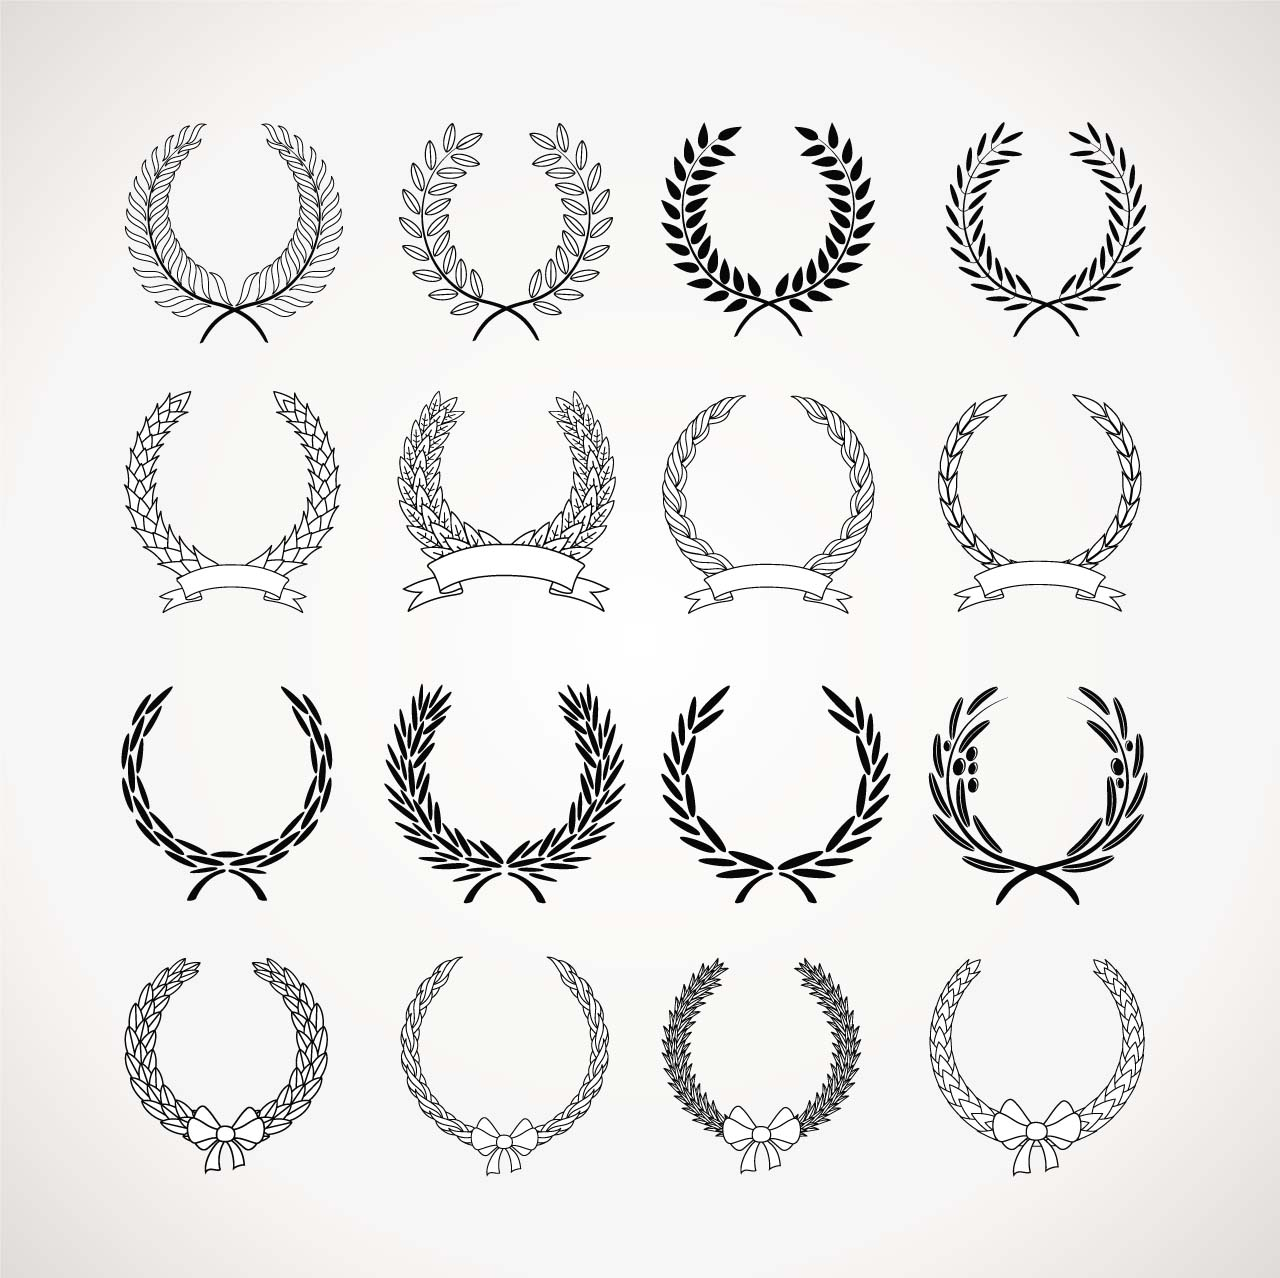 Monochrome Wreaths Set Vector Free Download